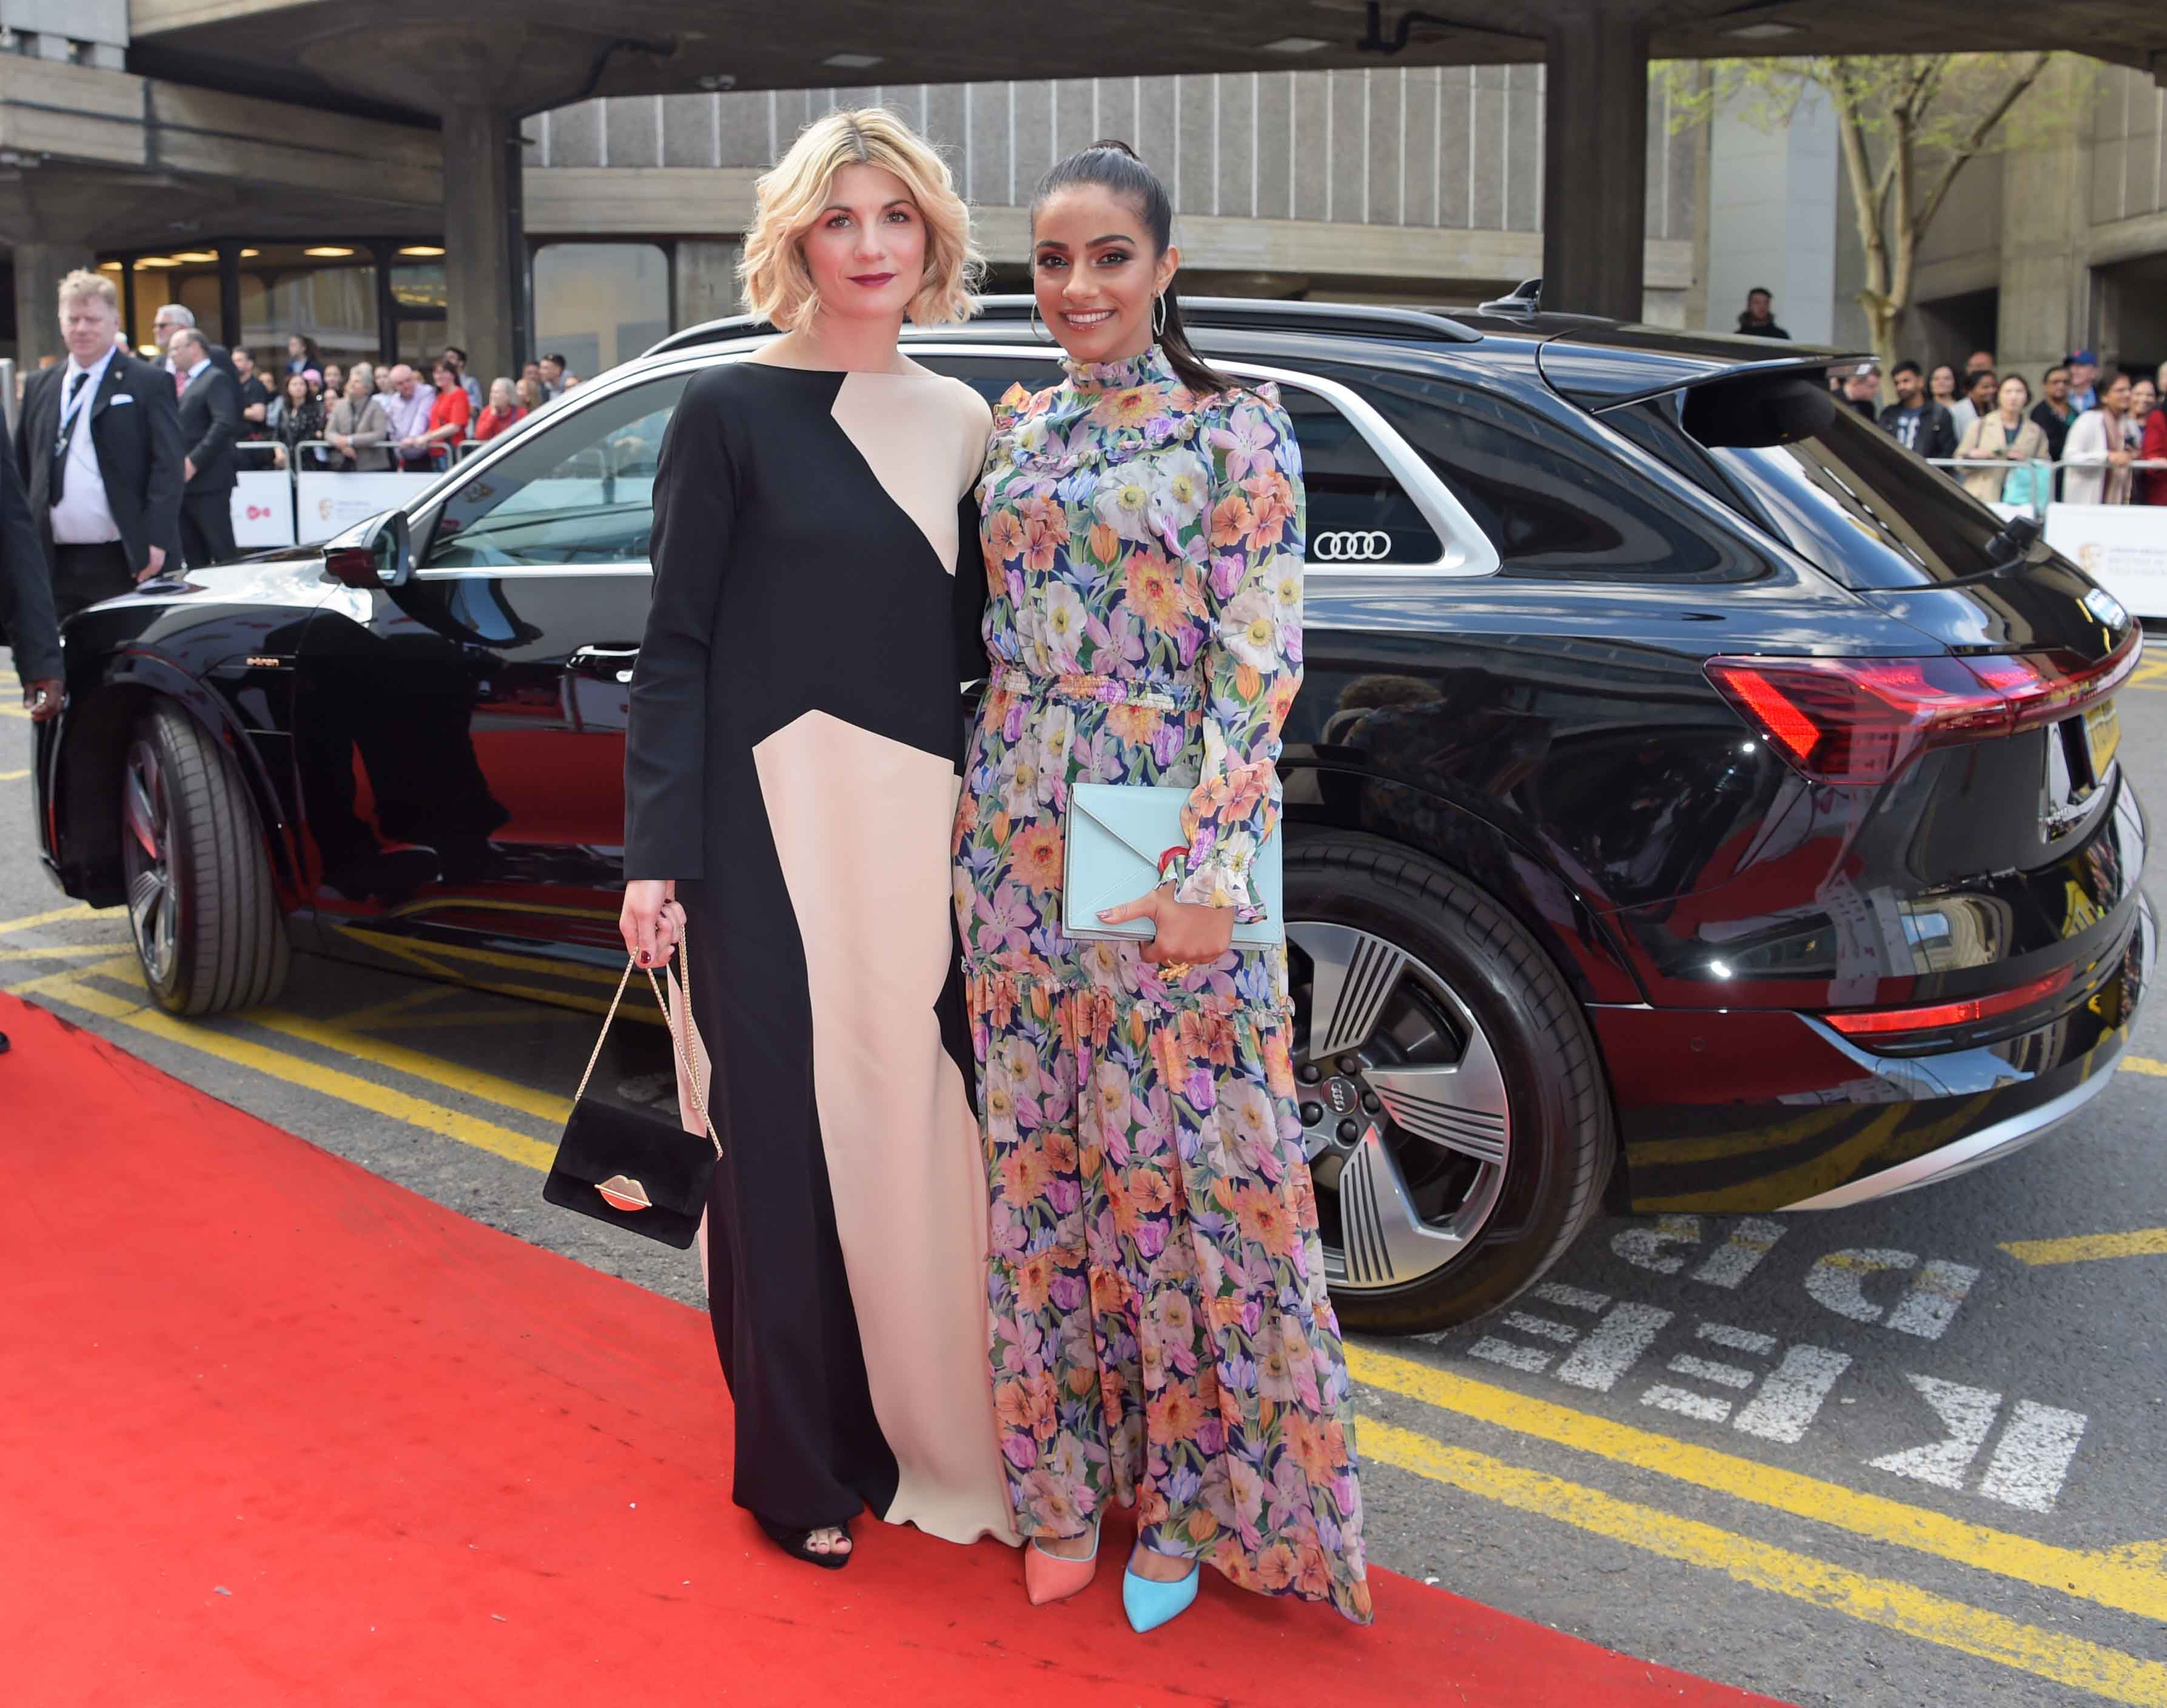 Jodie whittaker & mandip gill arrive in an audi e tron at the virgin media british academy television awards at the royal festival hall, london, sunday 12 may 2019